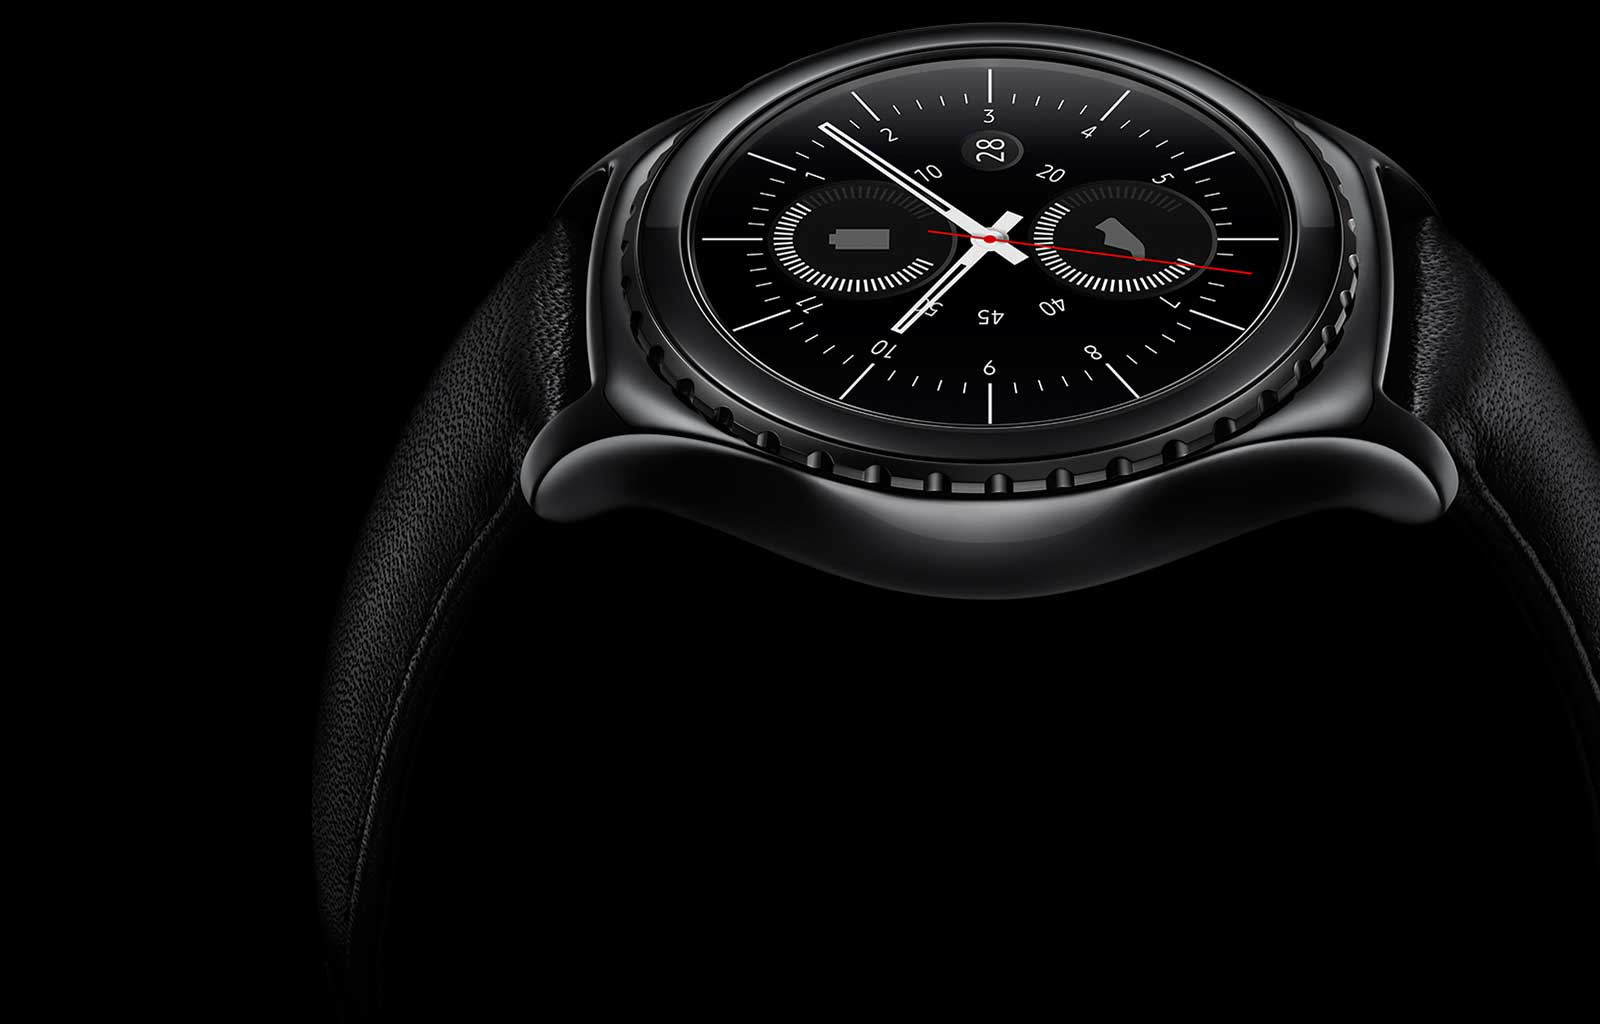 Connecting Samsung Gear S2 with iPhone